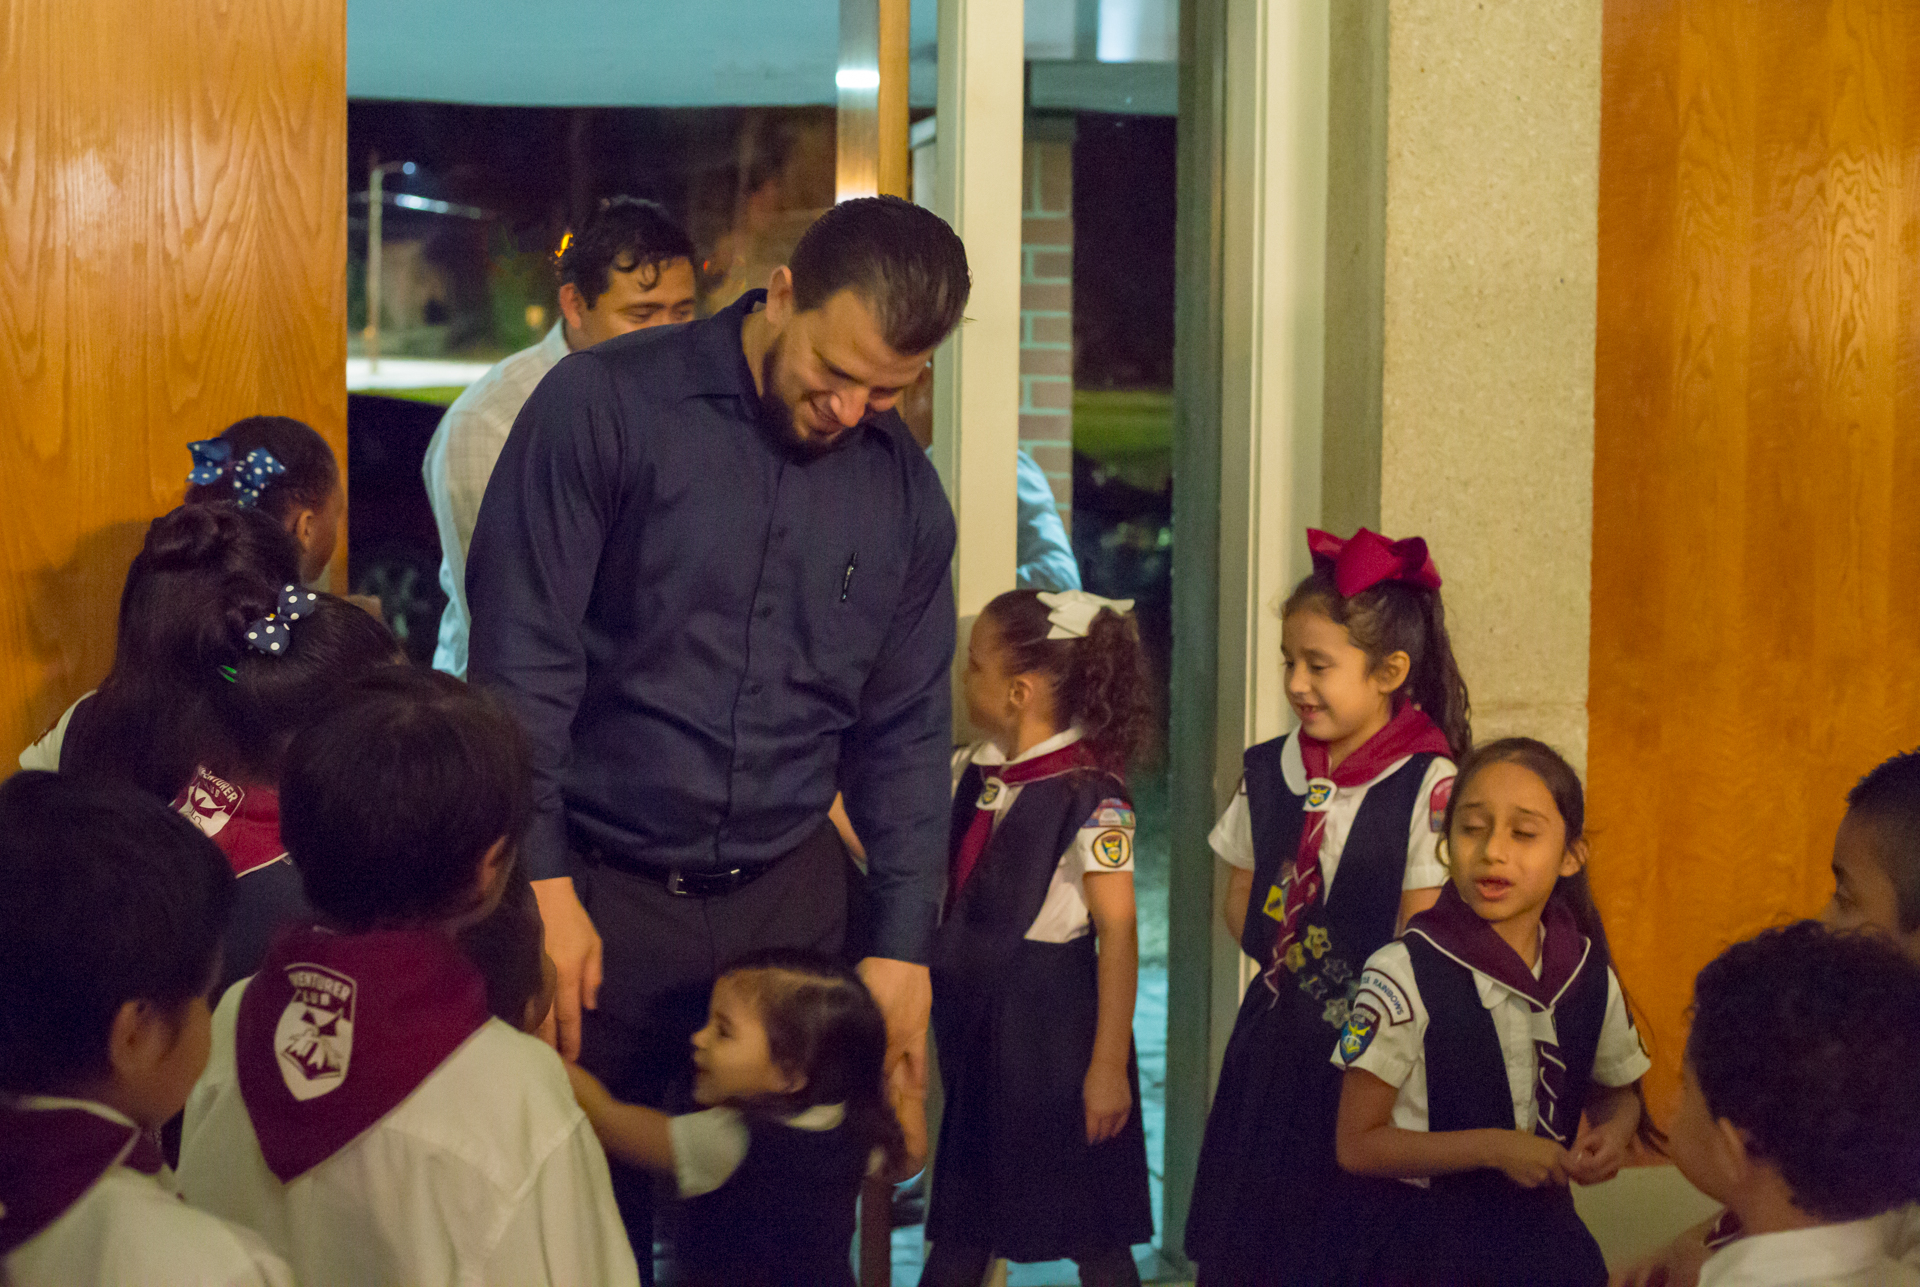 Michel Rodriguez, pastor of Montgomery Hispanic Church, is welcomed to his church by the Adventurers.